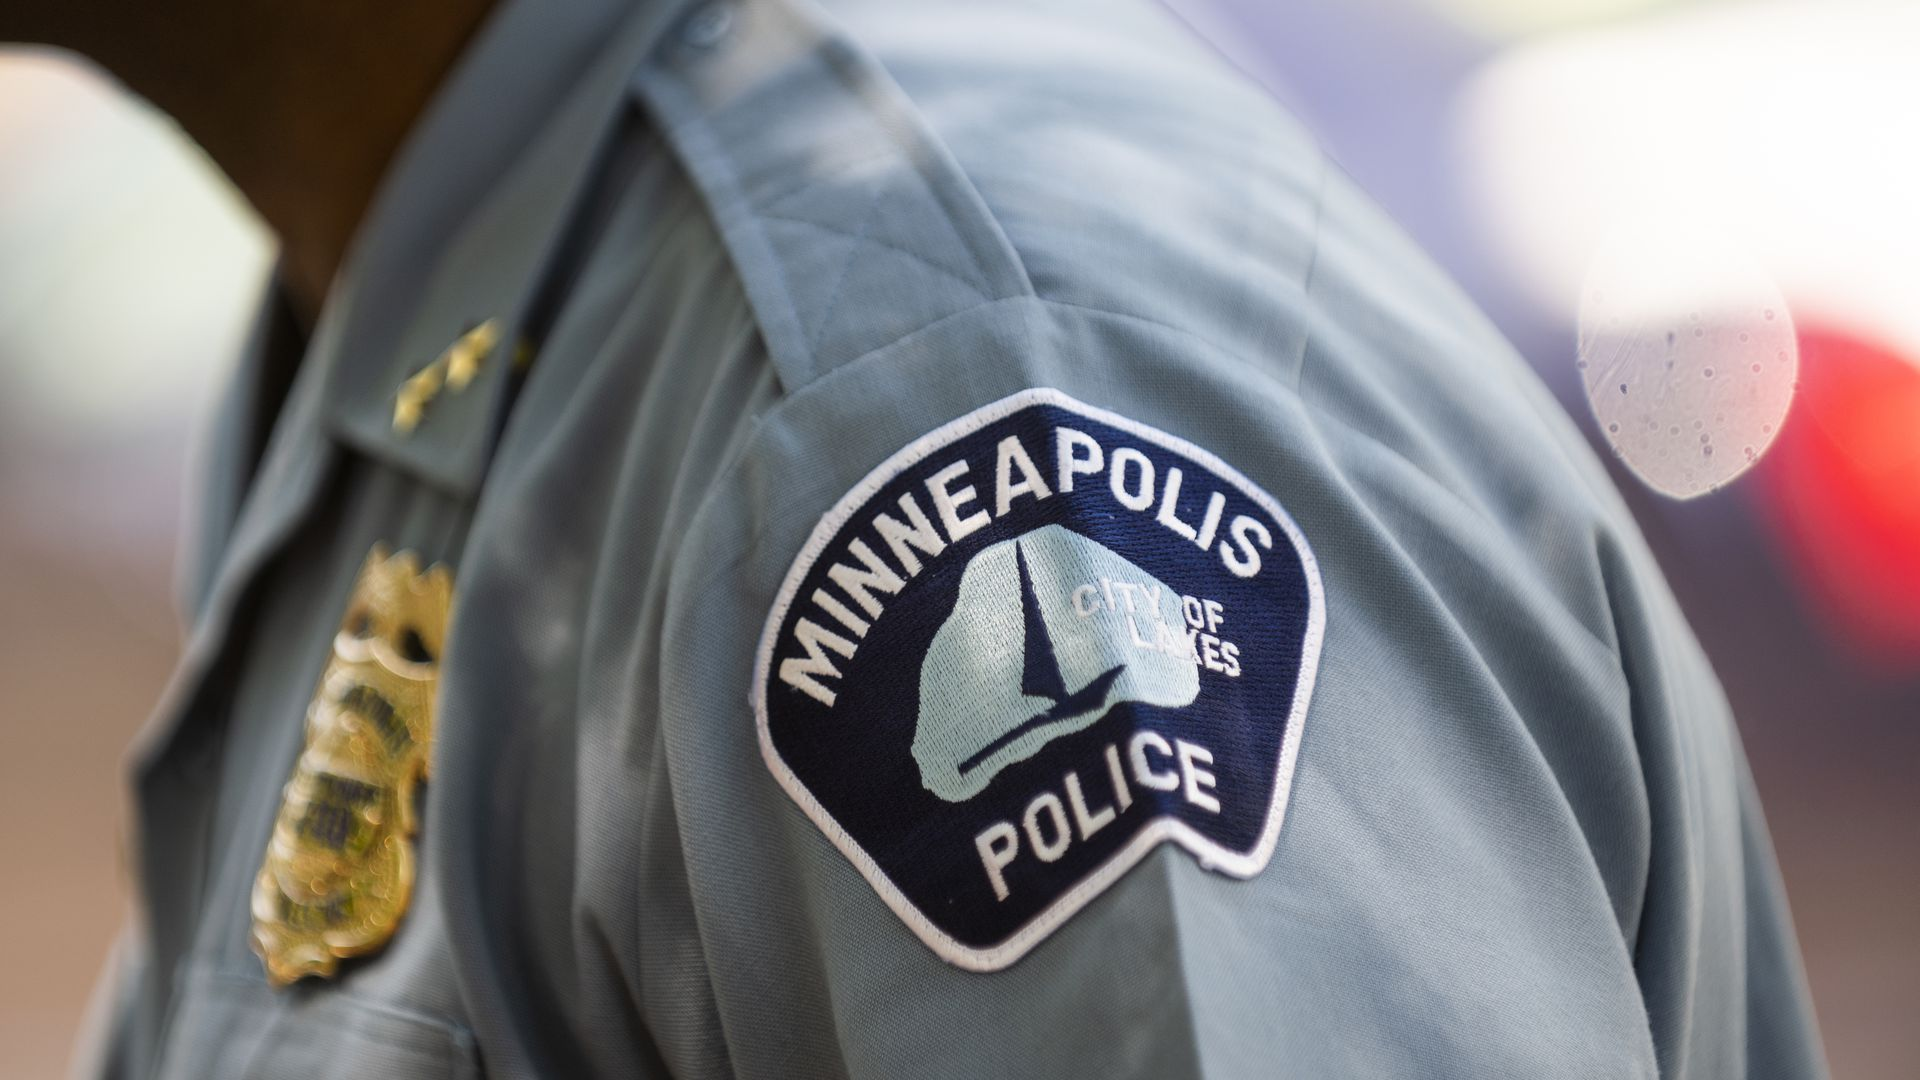 A Minneapolis police officer badge on a uniform.